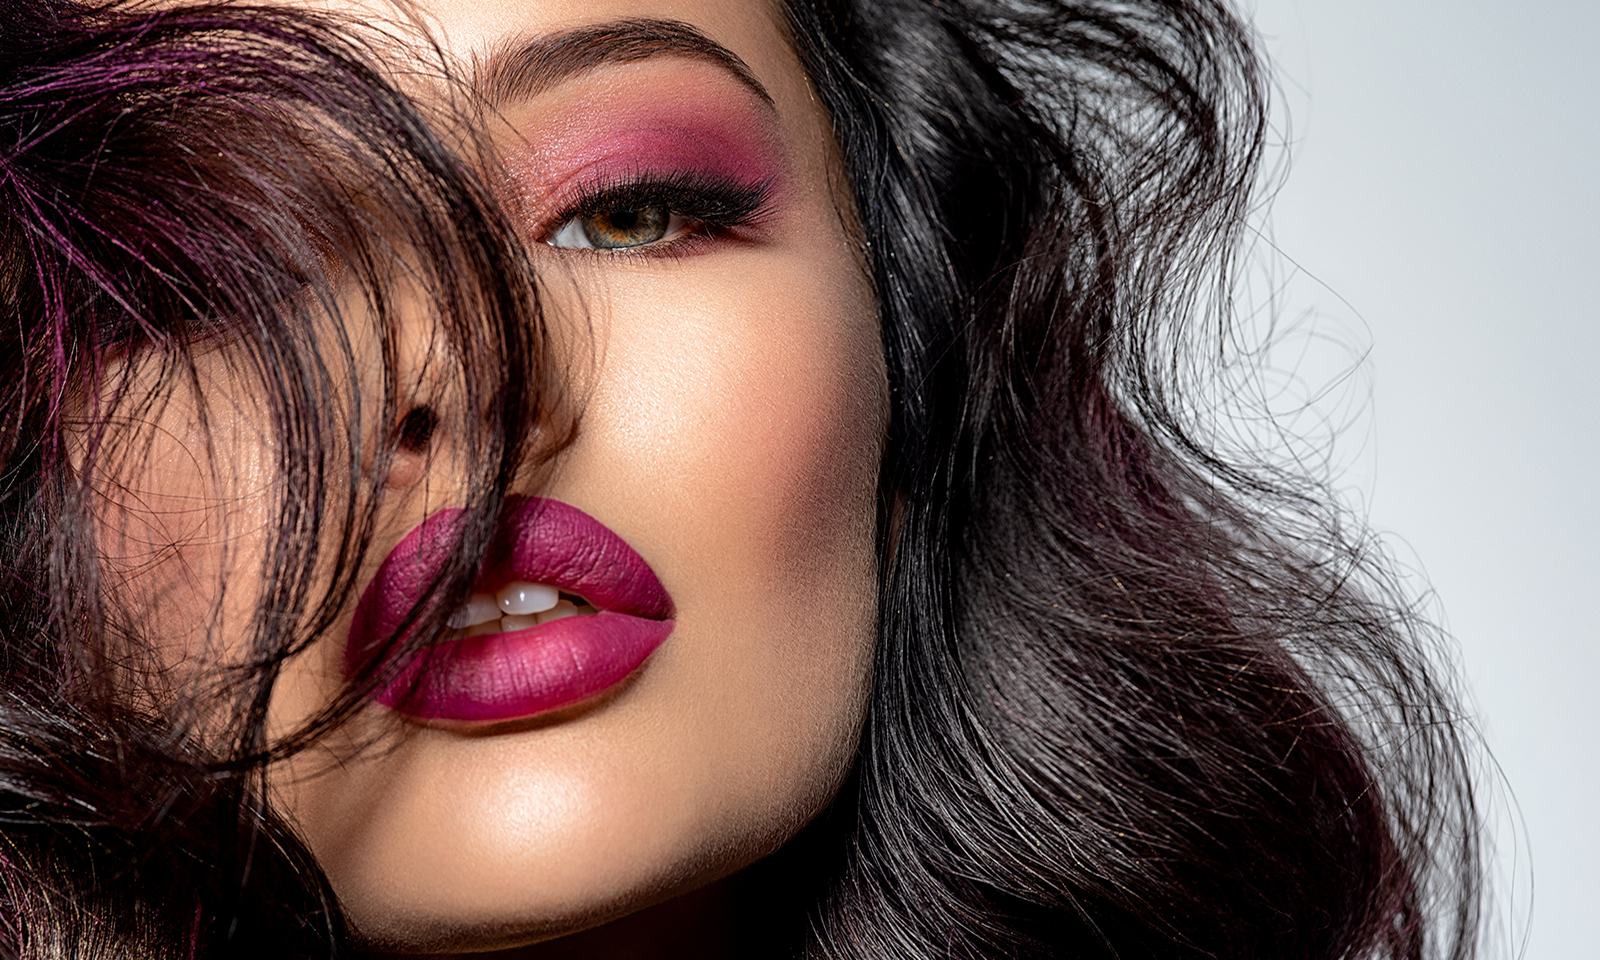 do-you-live-in-the-glam-world-or-real-world-main-image-woman-in-glam-makeup